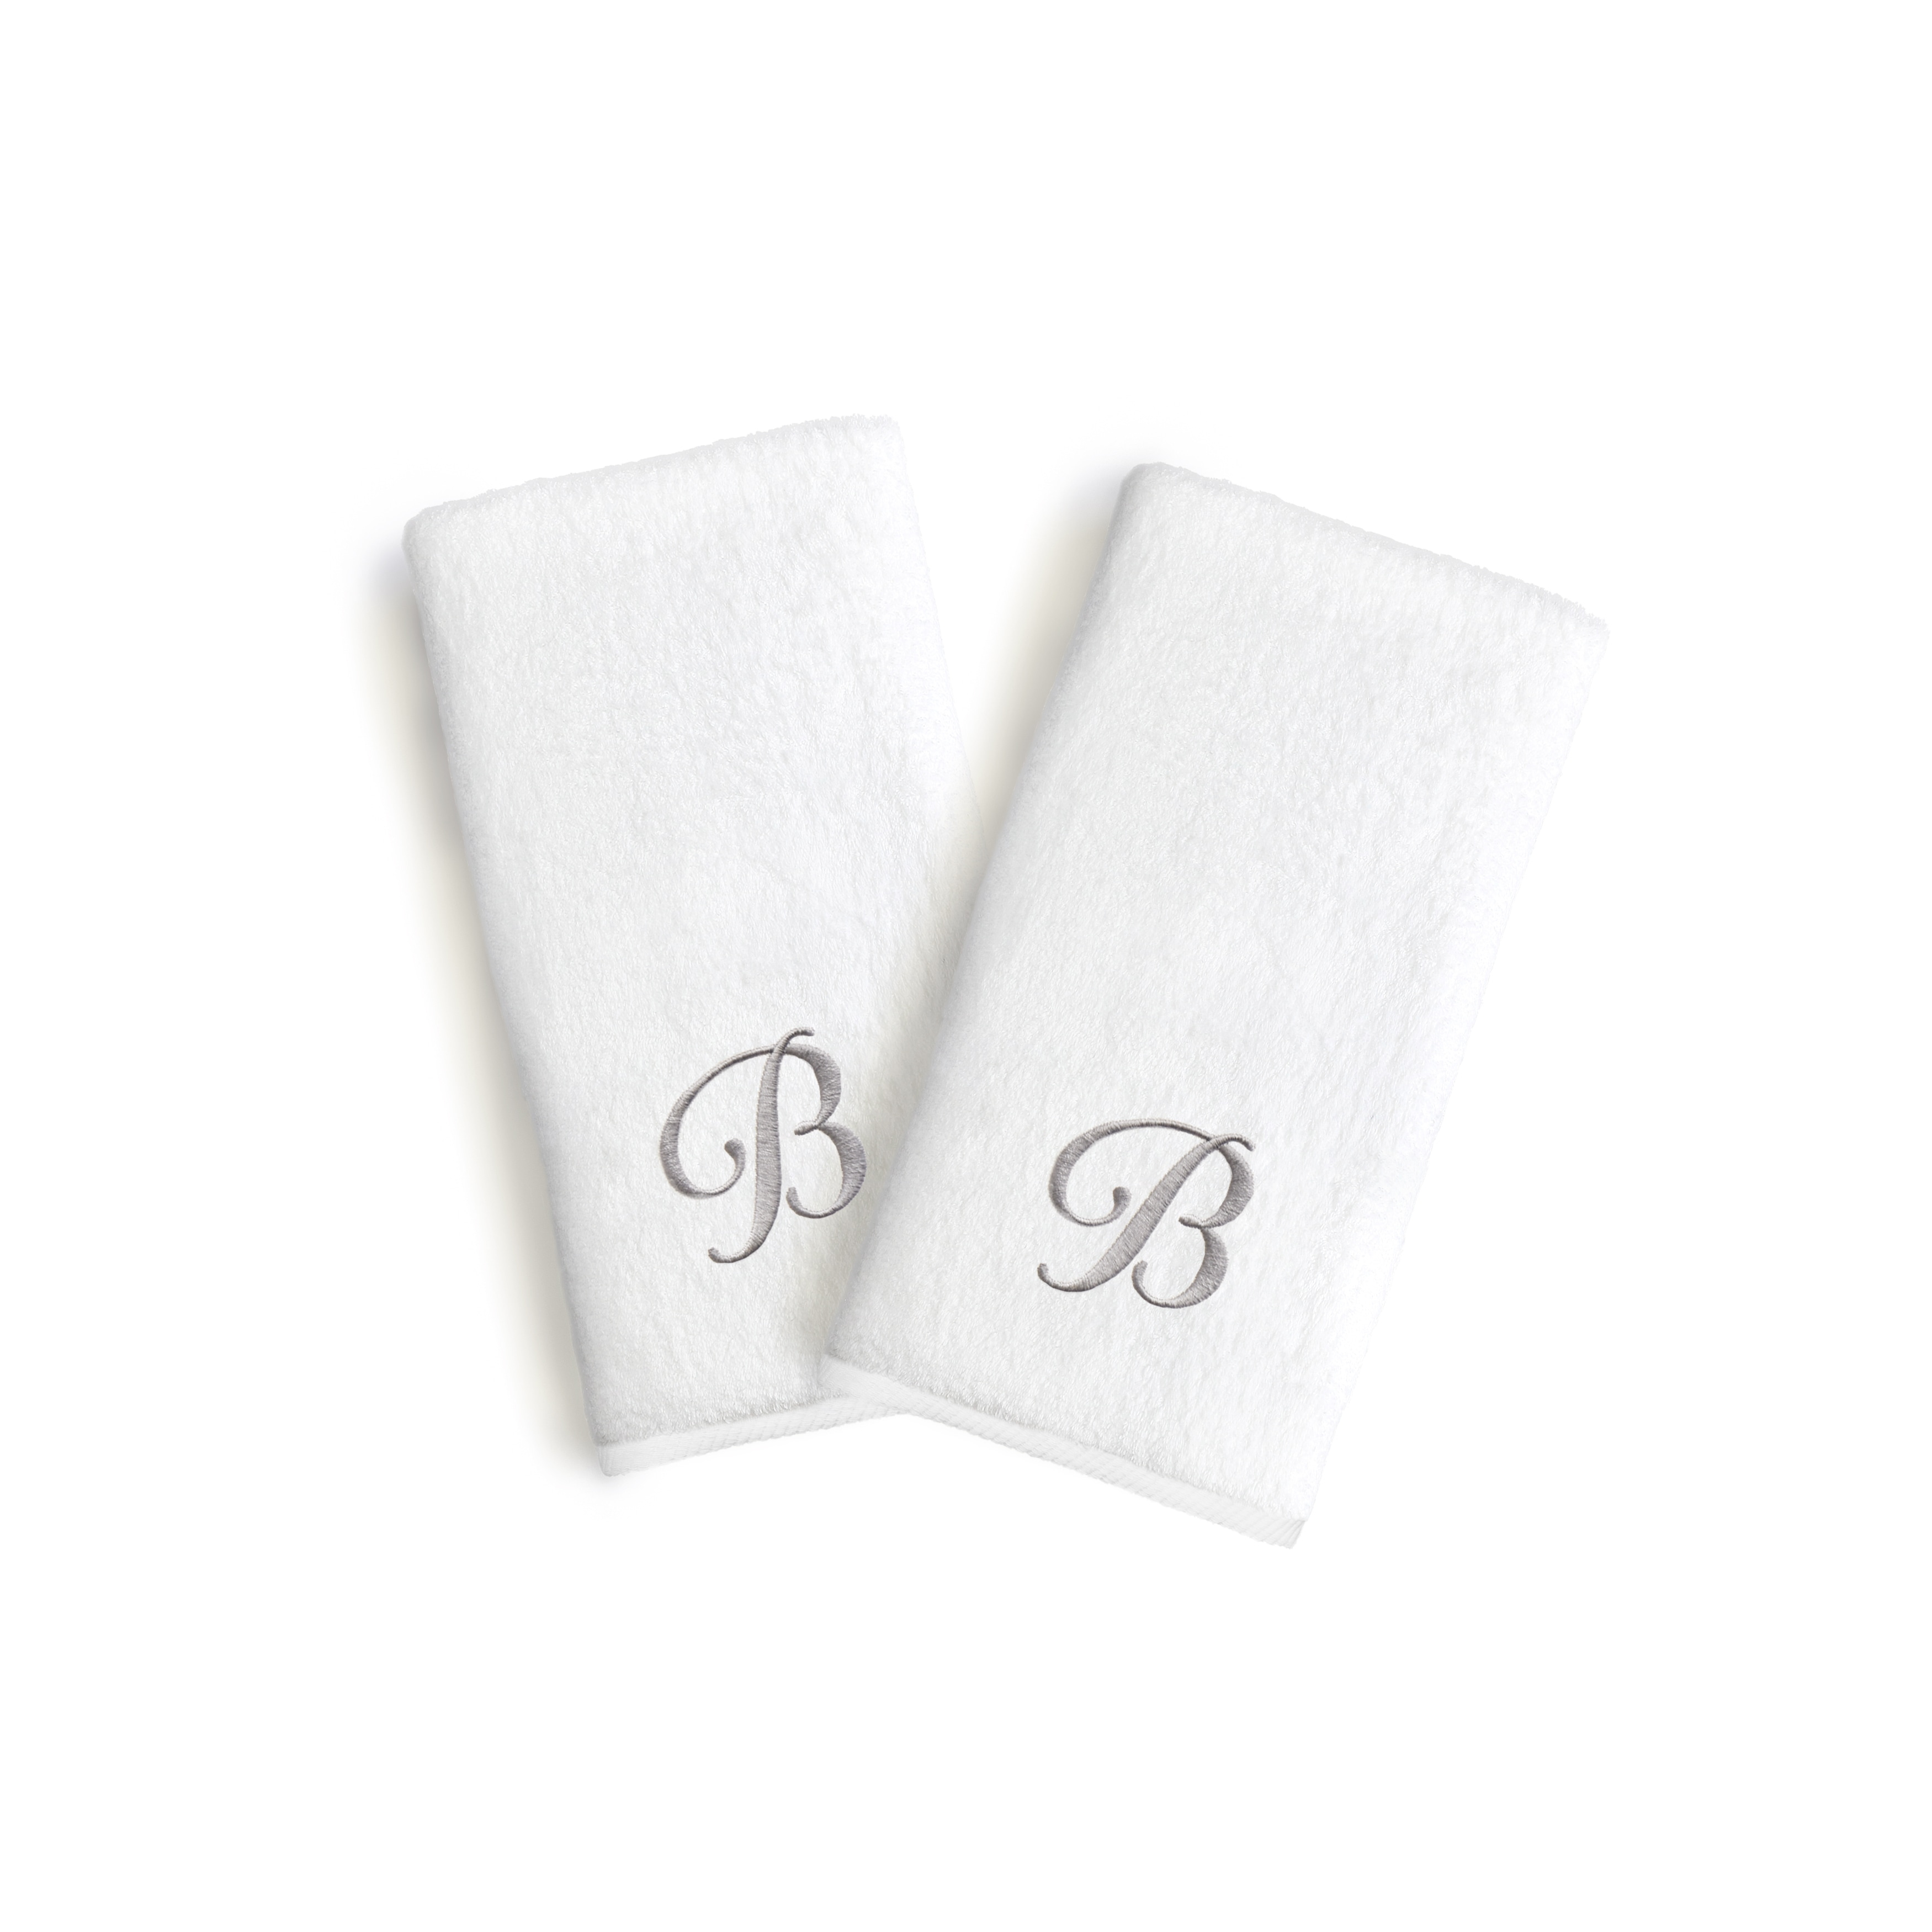 Authentic Hotel and Spa 2-piece White Turkish Cotton Hand Towels with Grey Script Monogrammed Initial